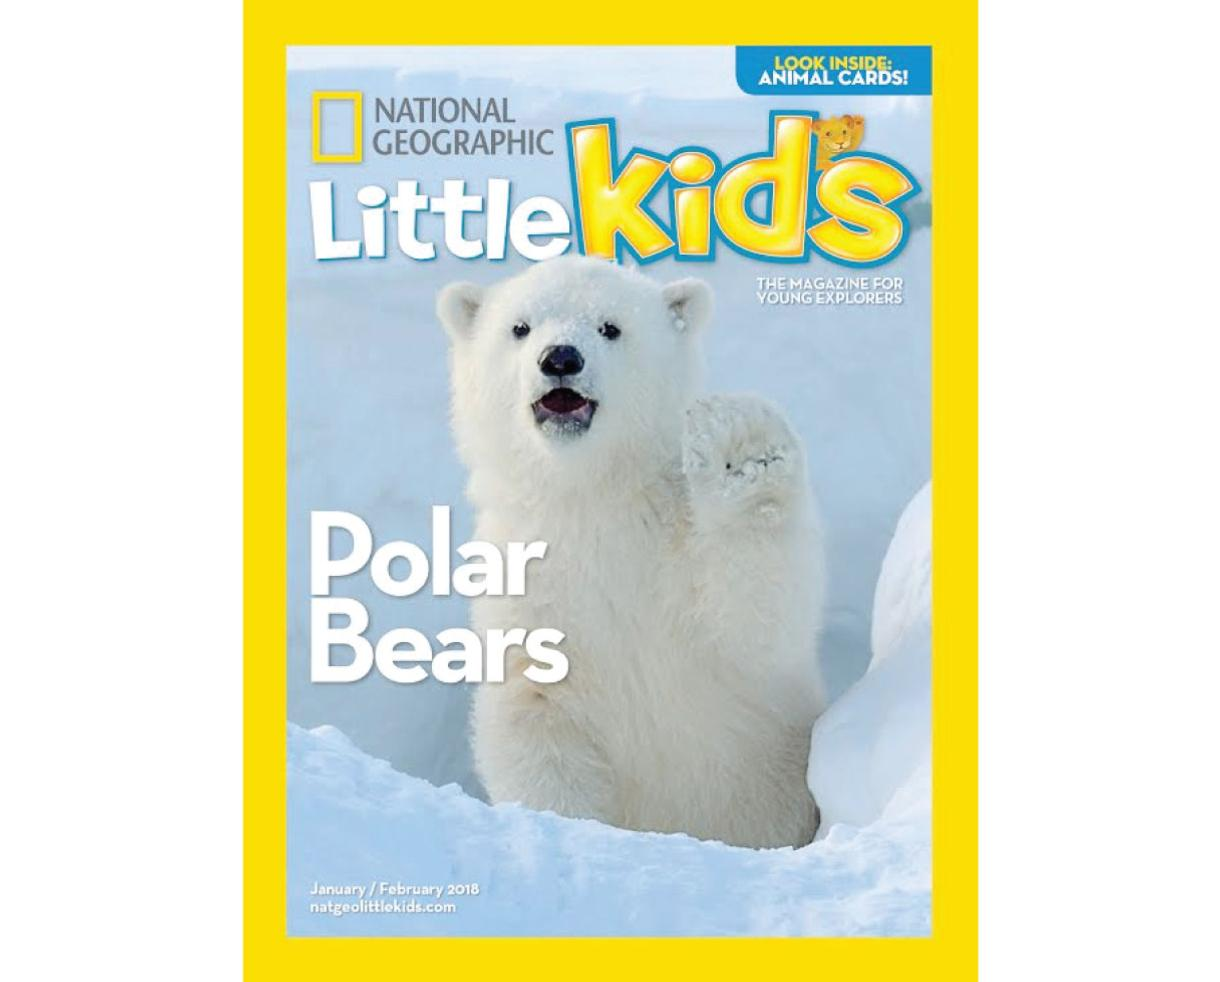 NATIONAL GEOGRAPHIC, the flagship magazine of the National Geographic Society, chronicles exploration and adventure, as well as changes that impact life on Earth.